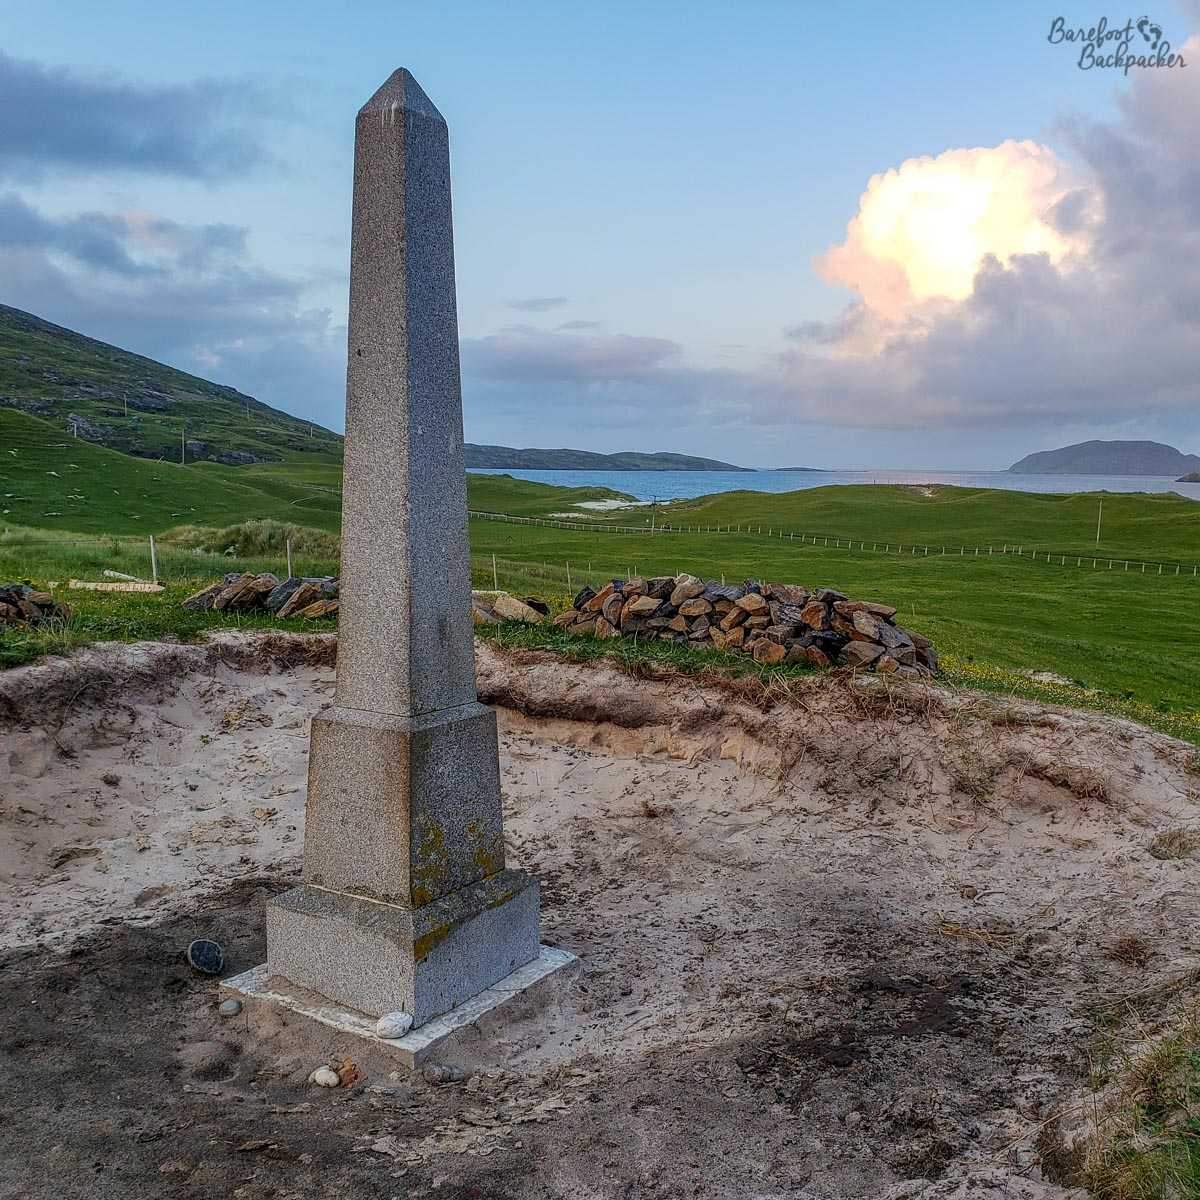 Memorial to the Annie Jane shipwreck, Vatersay